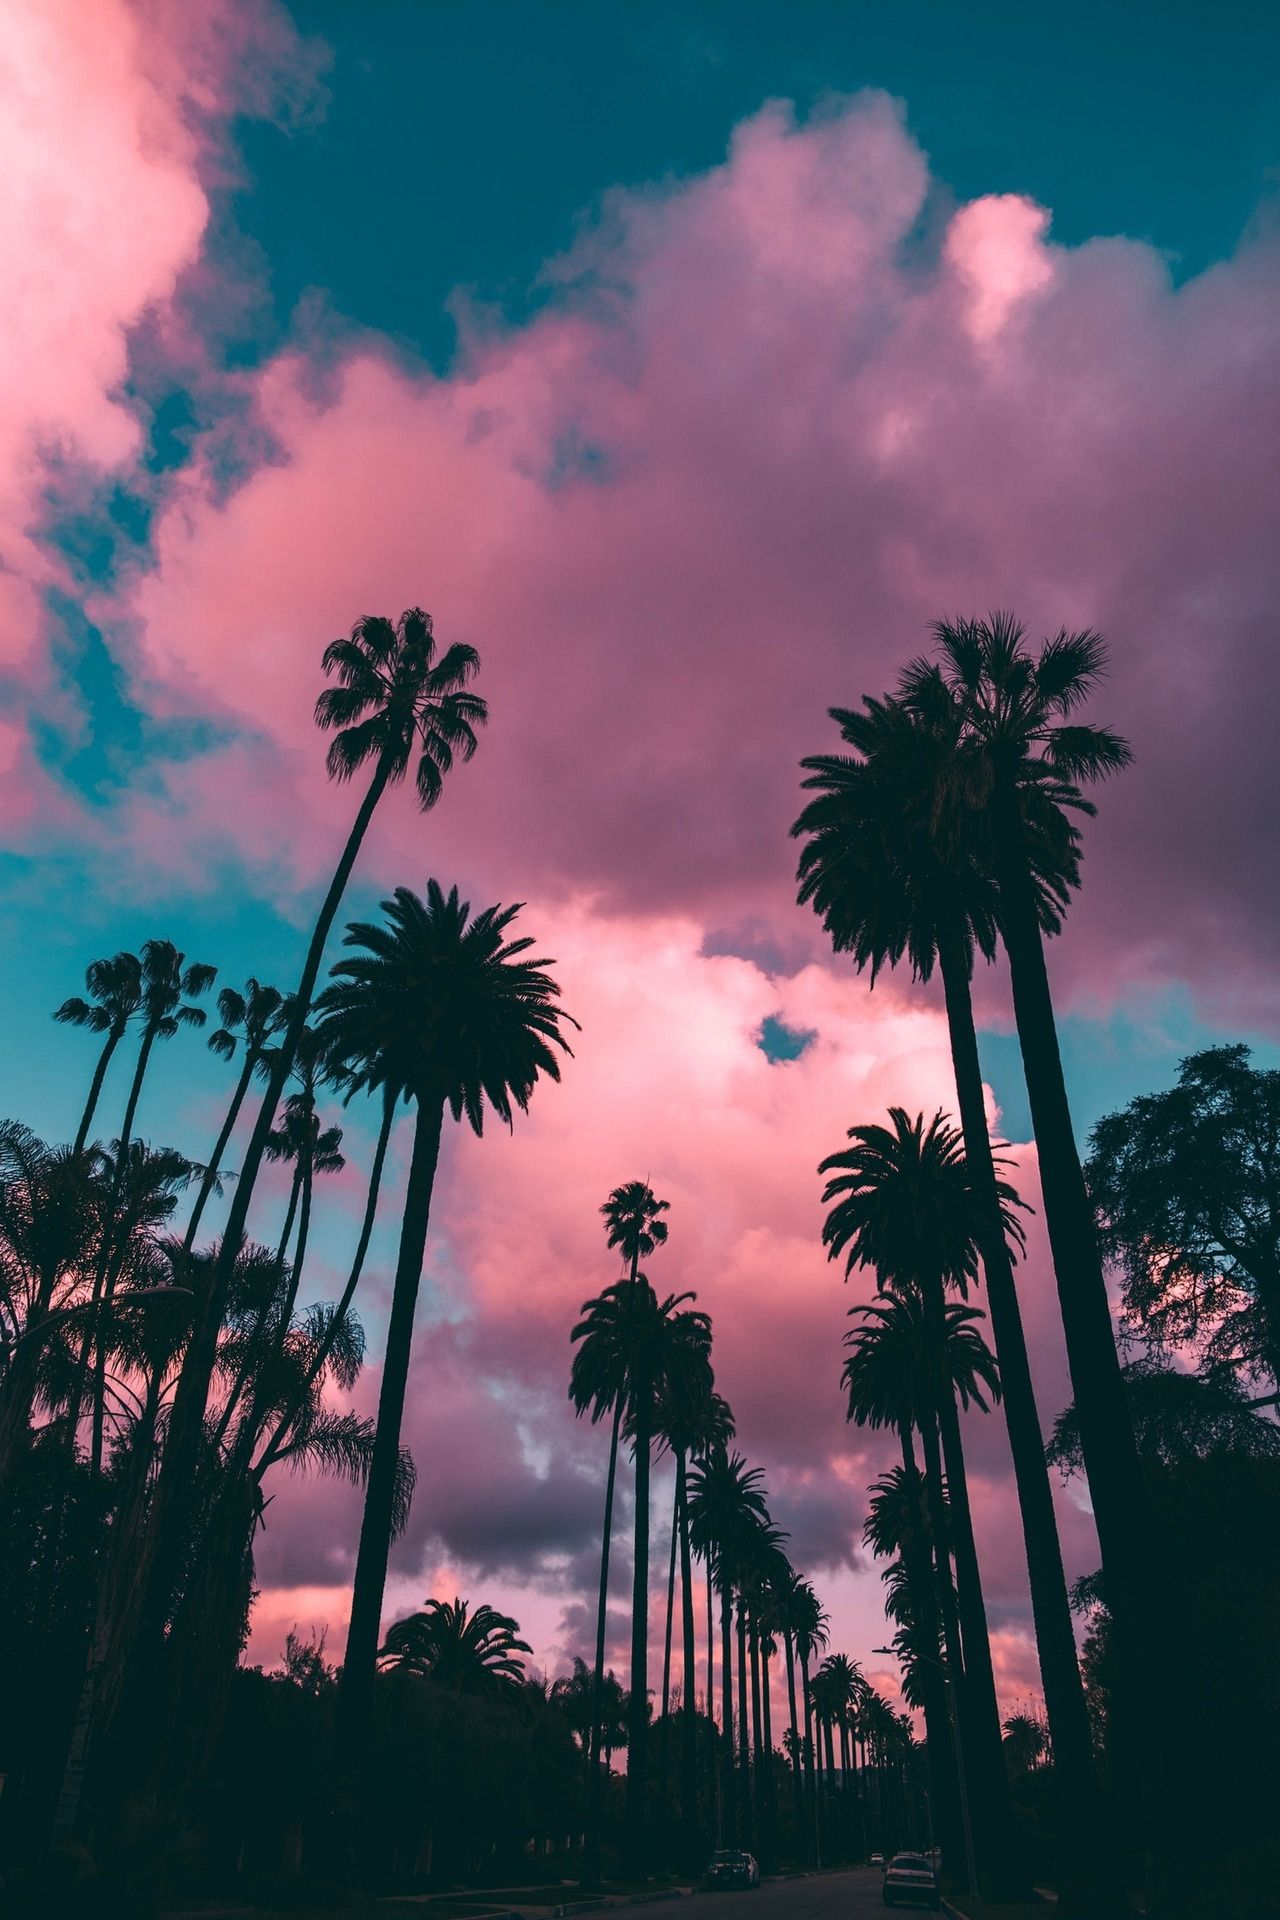 Pink Clouds By Roberto Nicklson Clouds Pink Palms Sky Sunset Palm Tree Iphone Wallpaper Palm Trees Wallpaper Beautiful Nature Wallpaper